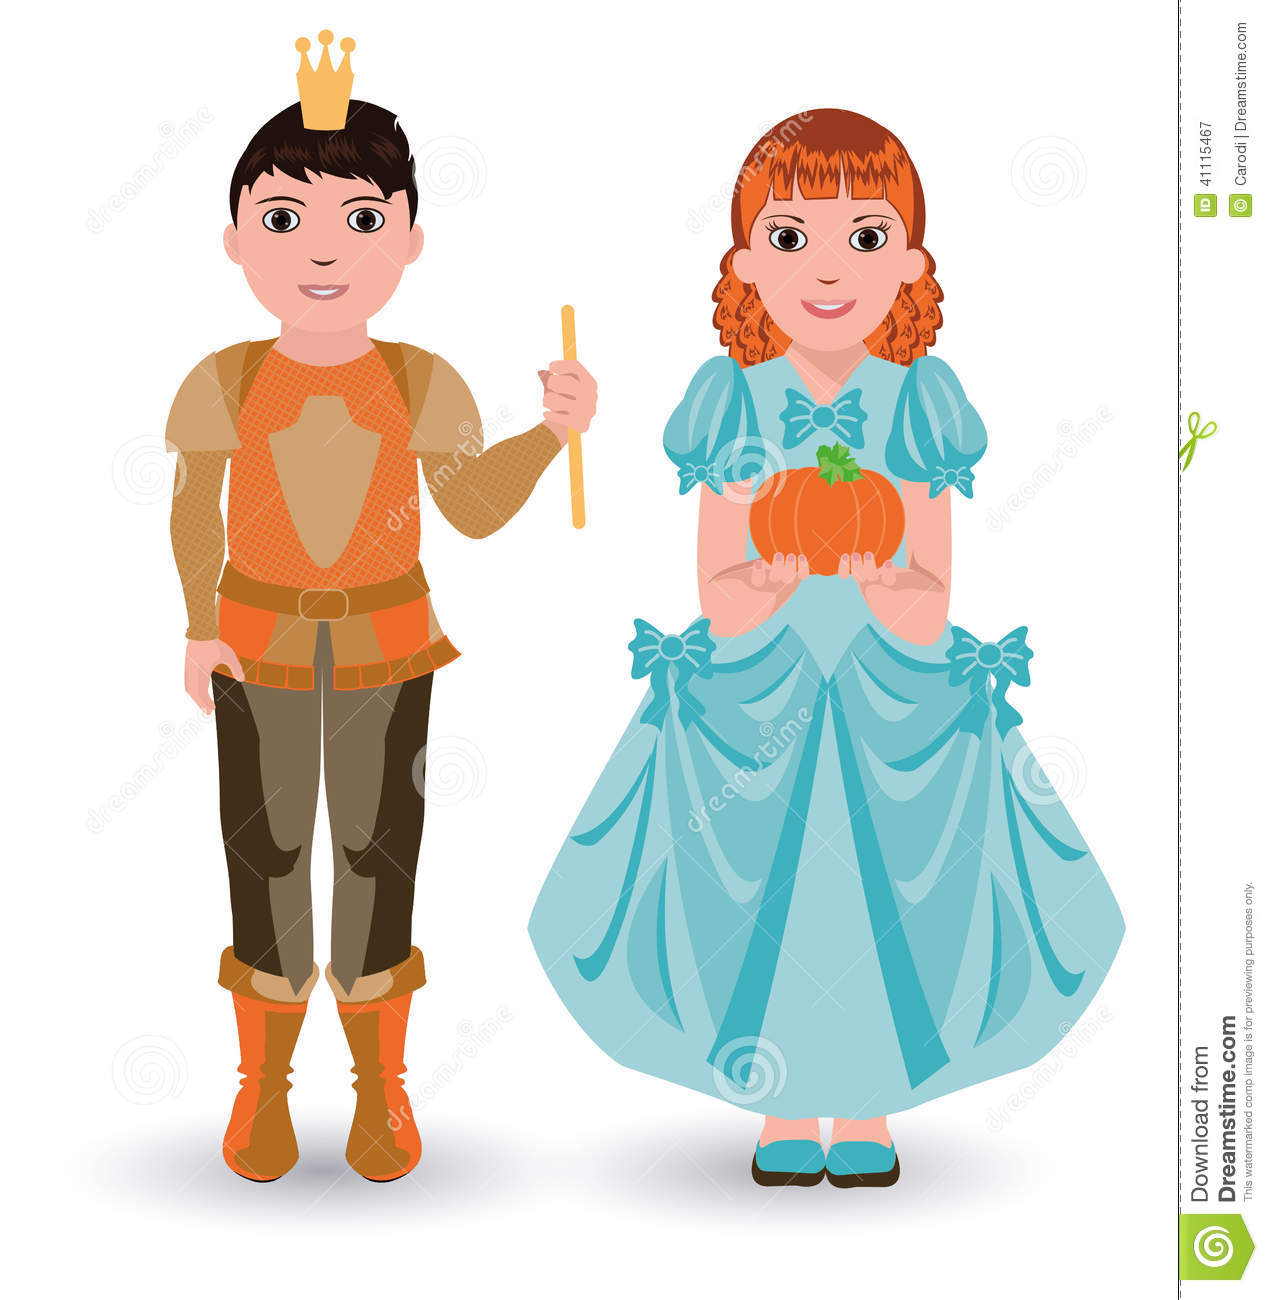 cinderella and princess